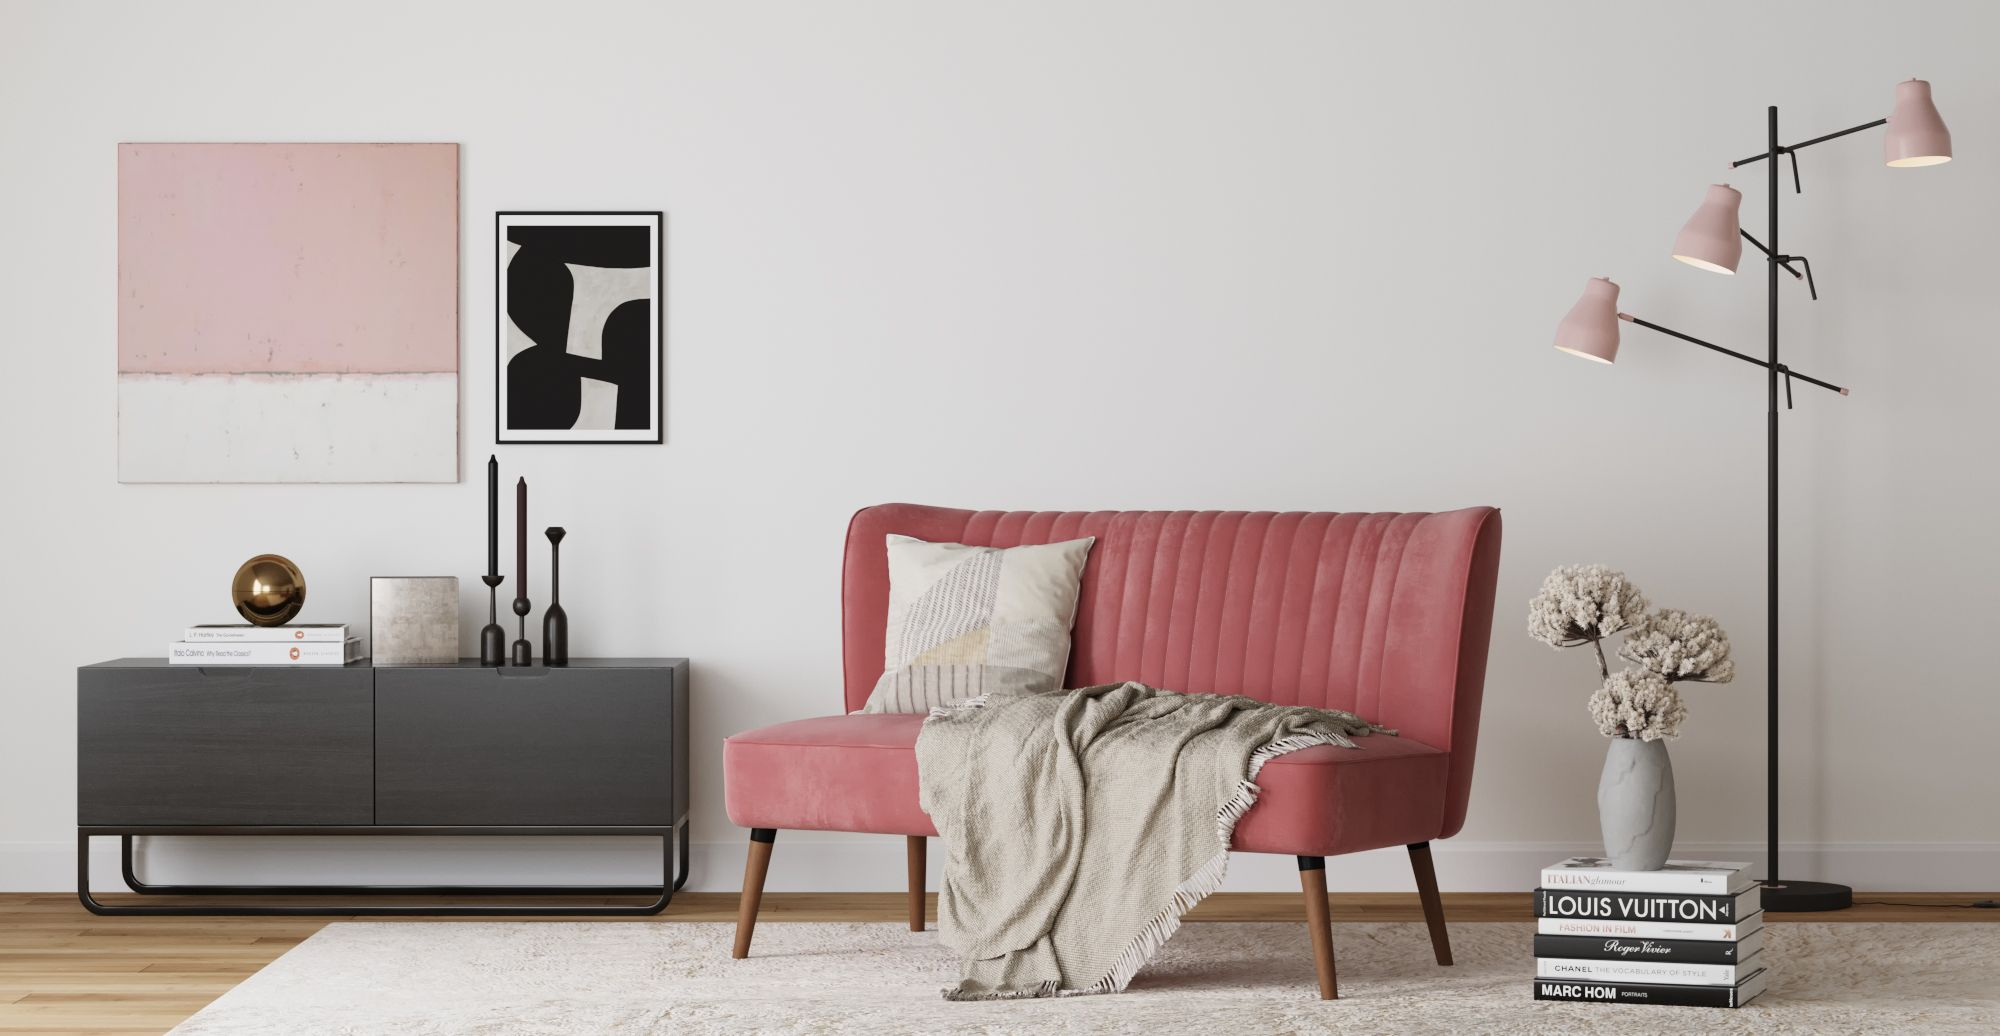 Brosa Hydra Floor Lamp styled in modern contemporary living room